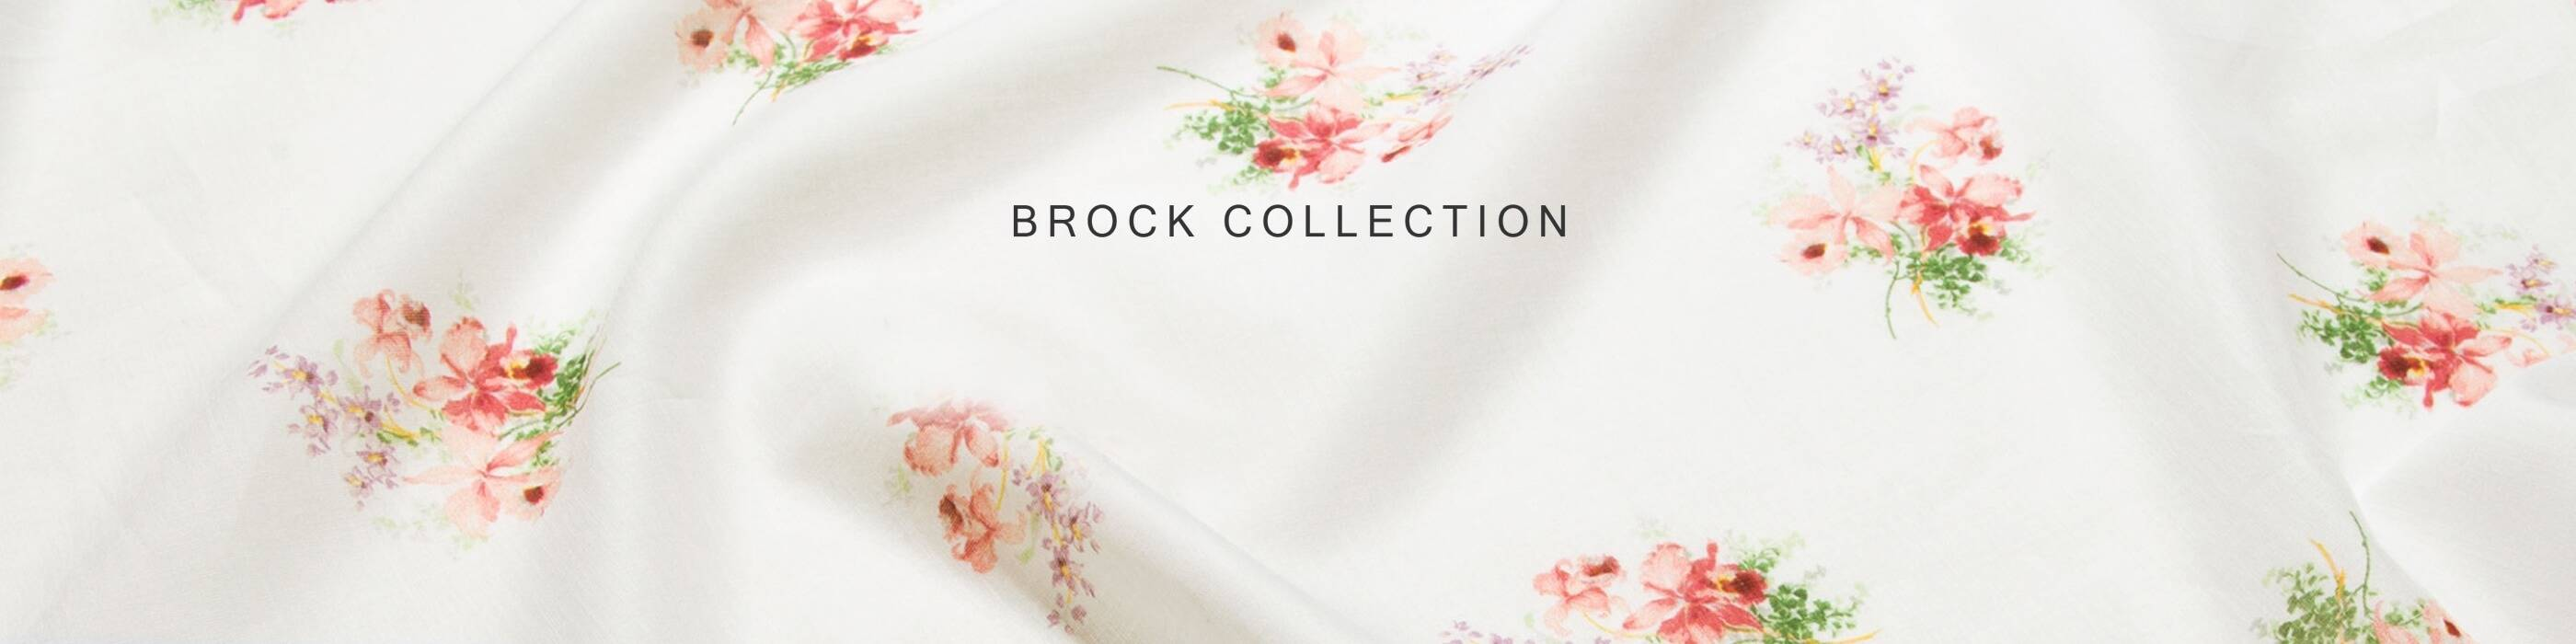 Brock Collection for Paperless Post